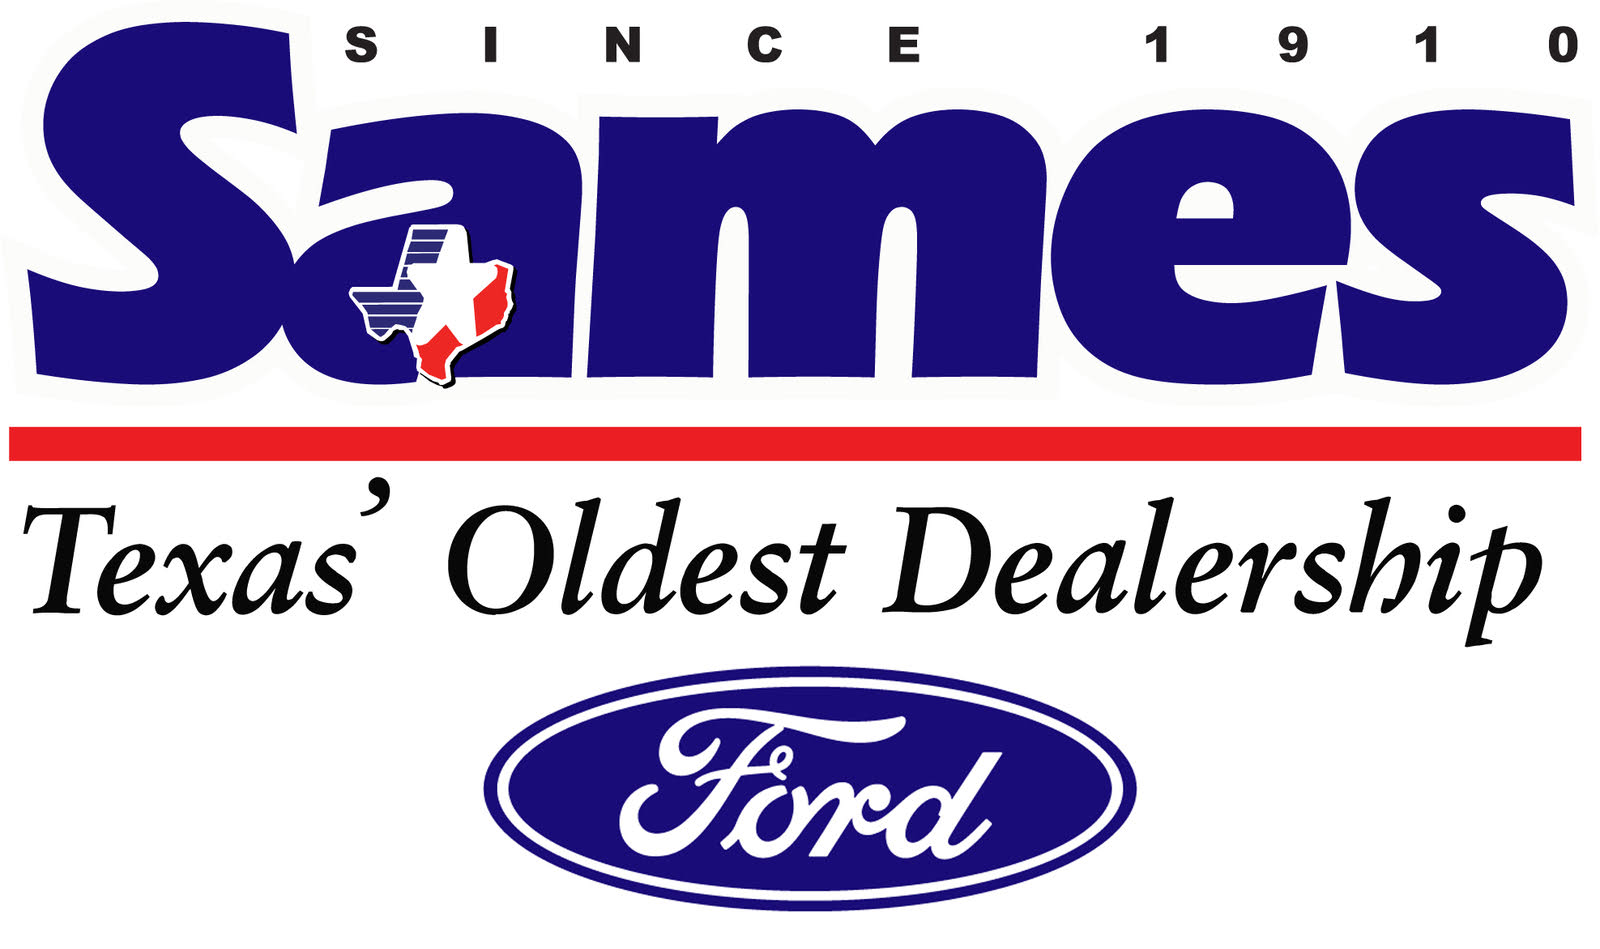 Sames Ford Laredo - Laredo, TX: Read Consumer reviews, Browse Used and New Cars for Sale